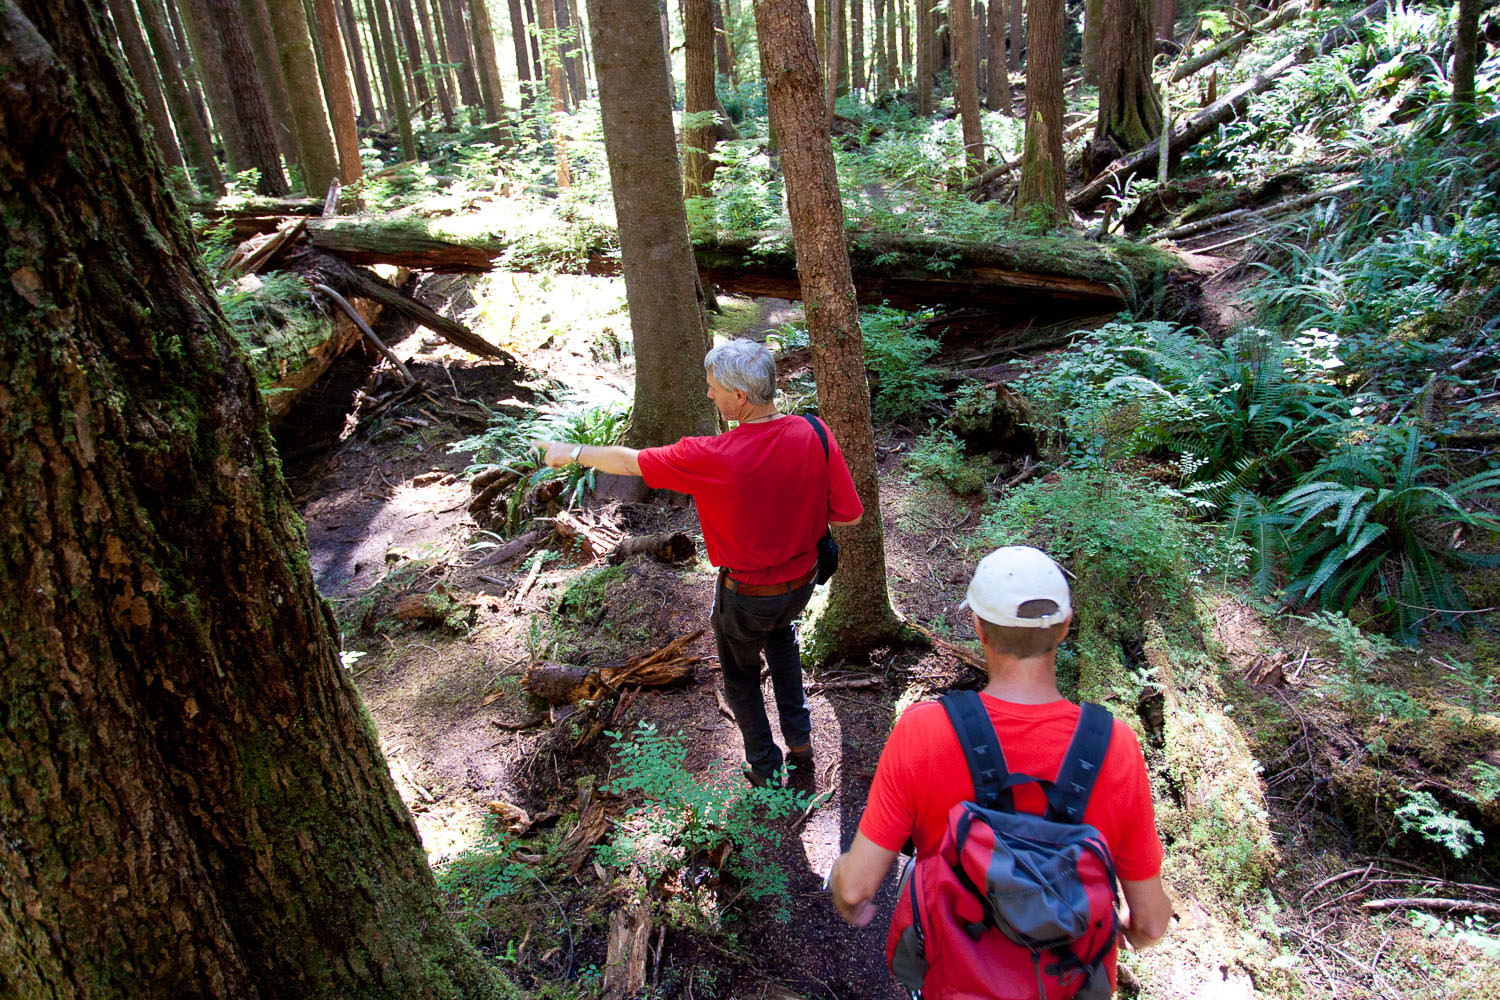 hikers-on-trail-avatar-grove.jpg